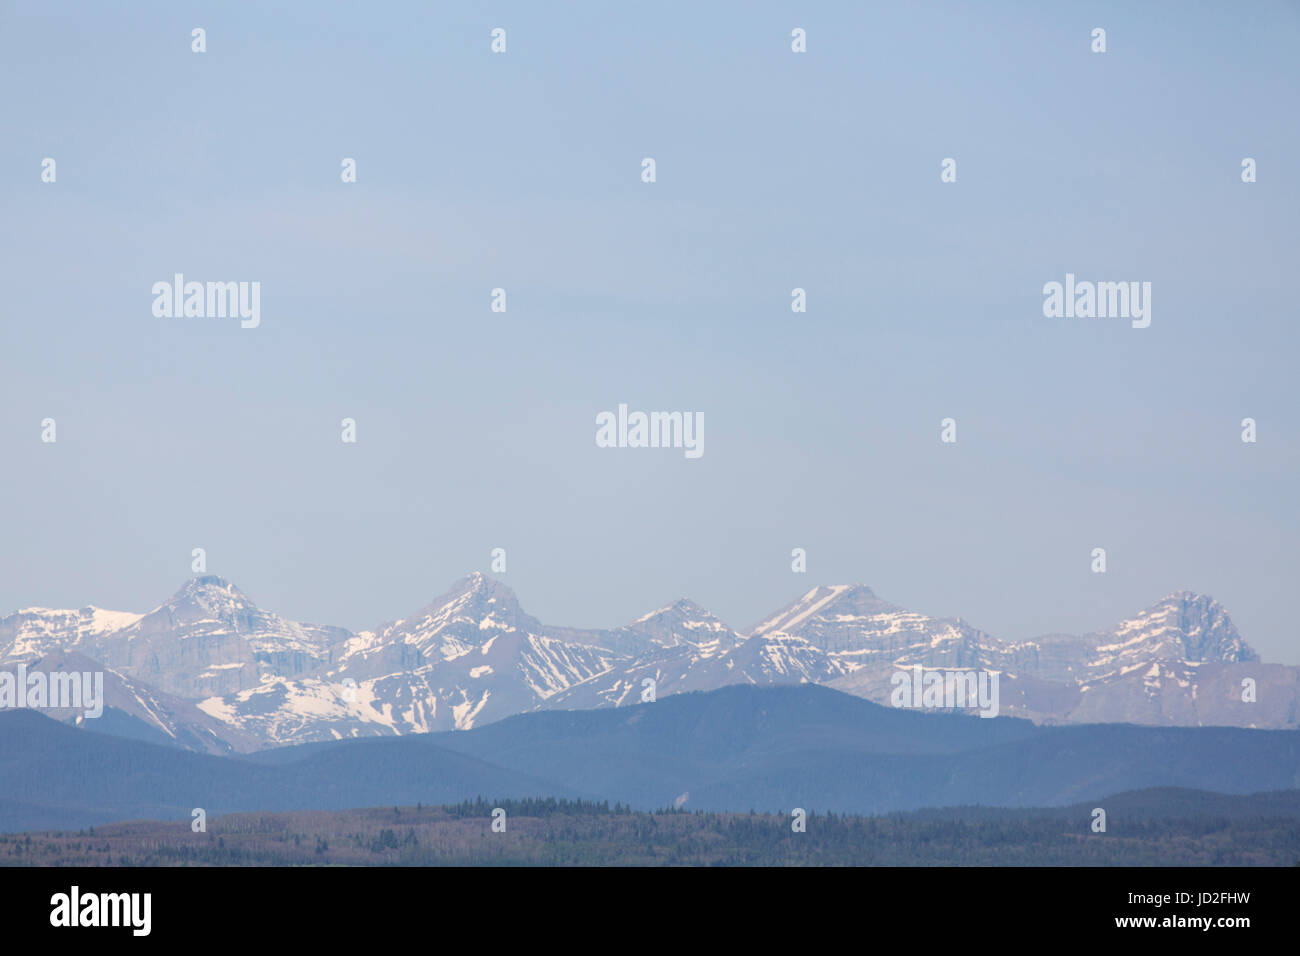 Snow-capped peaks in the Canadian Rockies at Banff National Park in Alberta, Canada. The snow can be seen into summer. - Stock Image